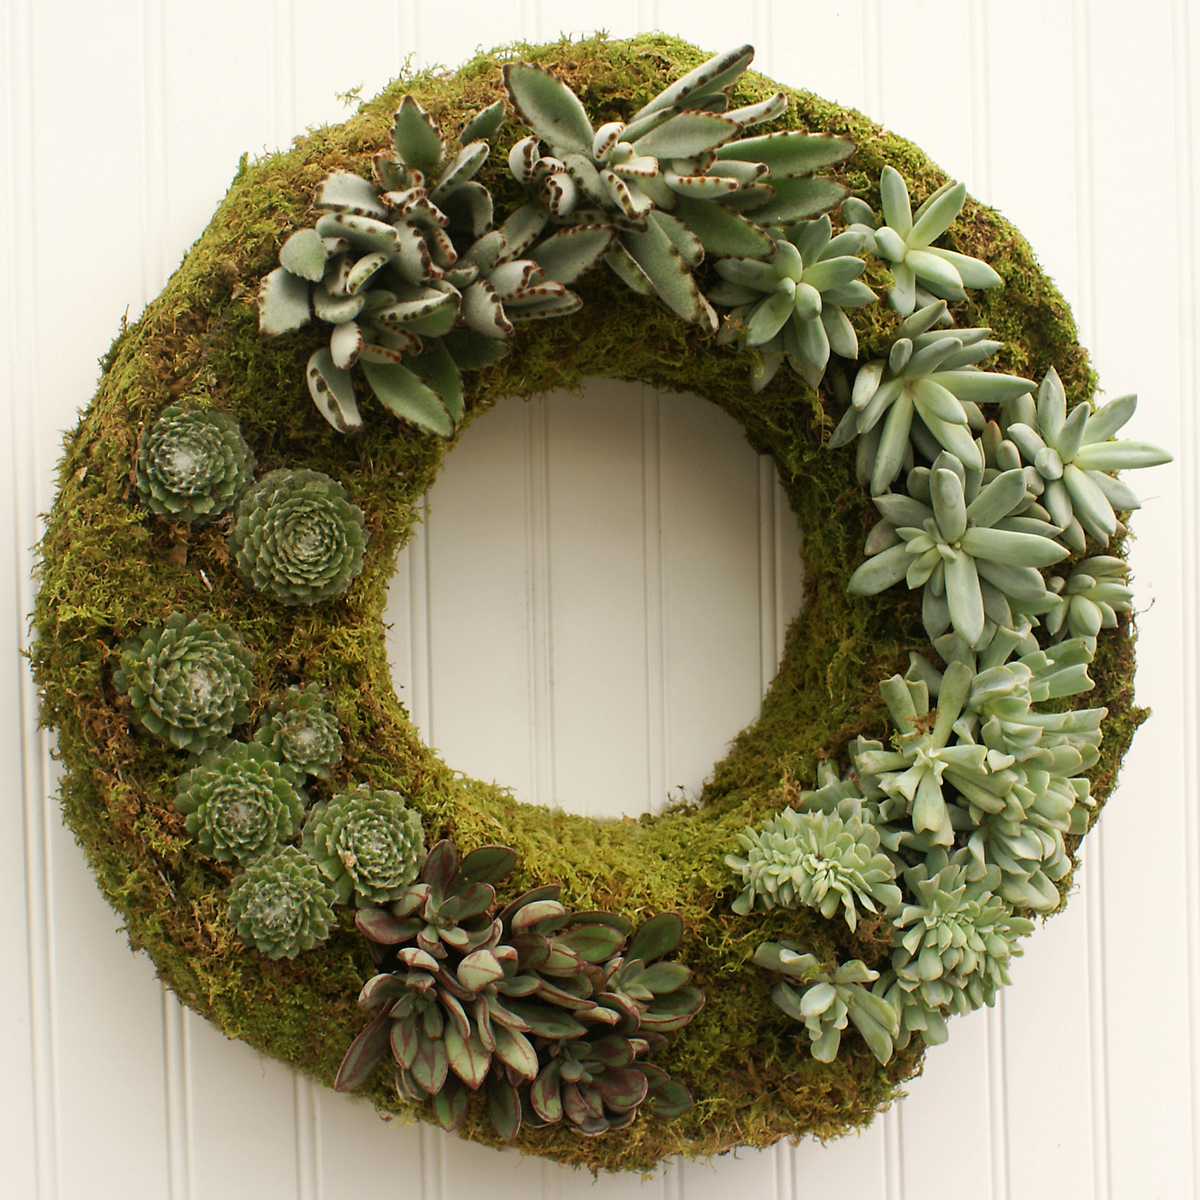 Moss & Succulent Wreath